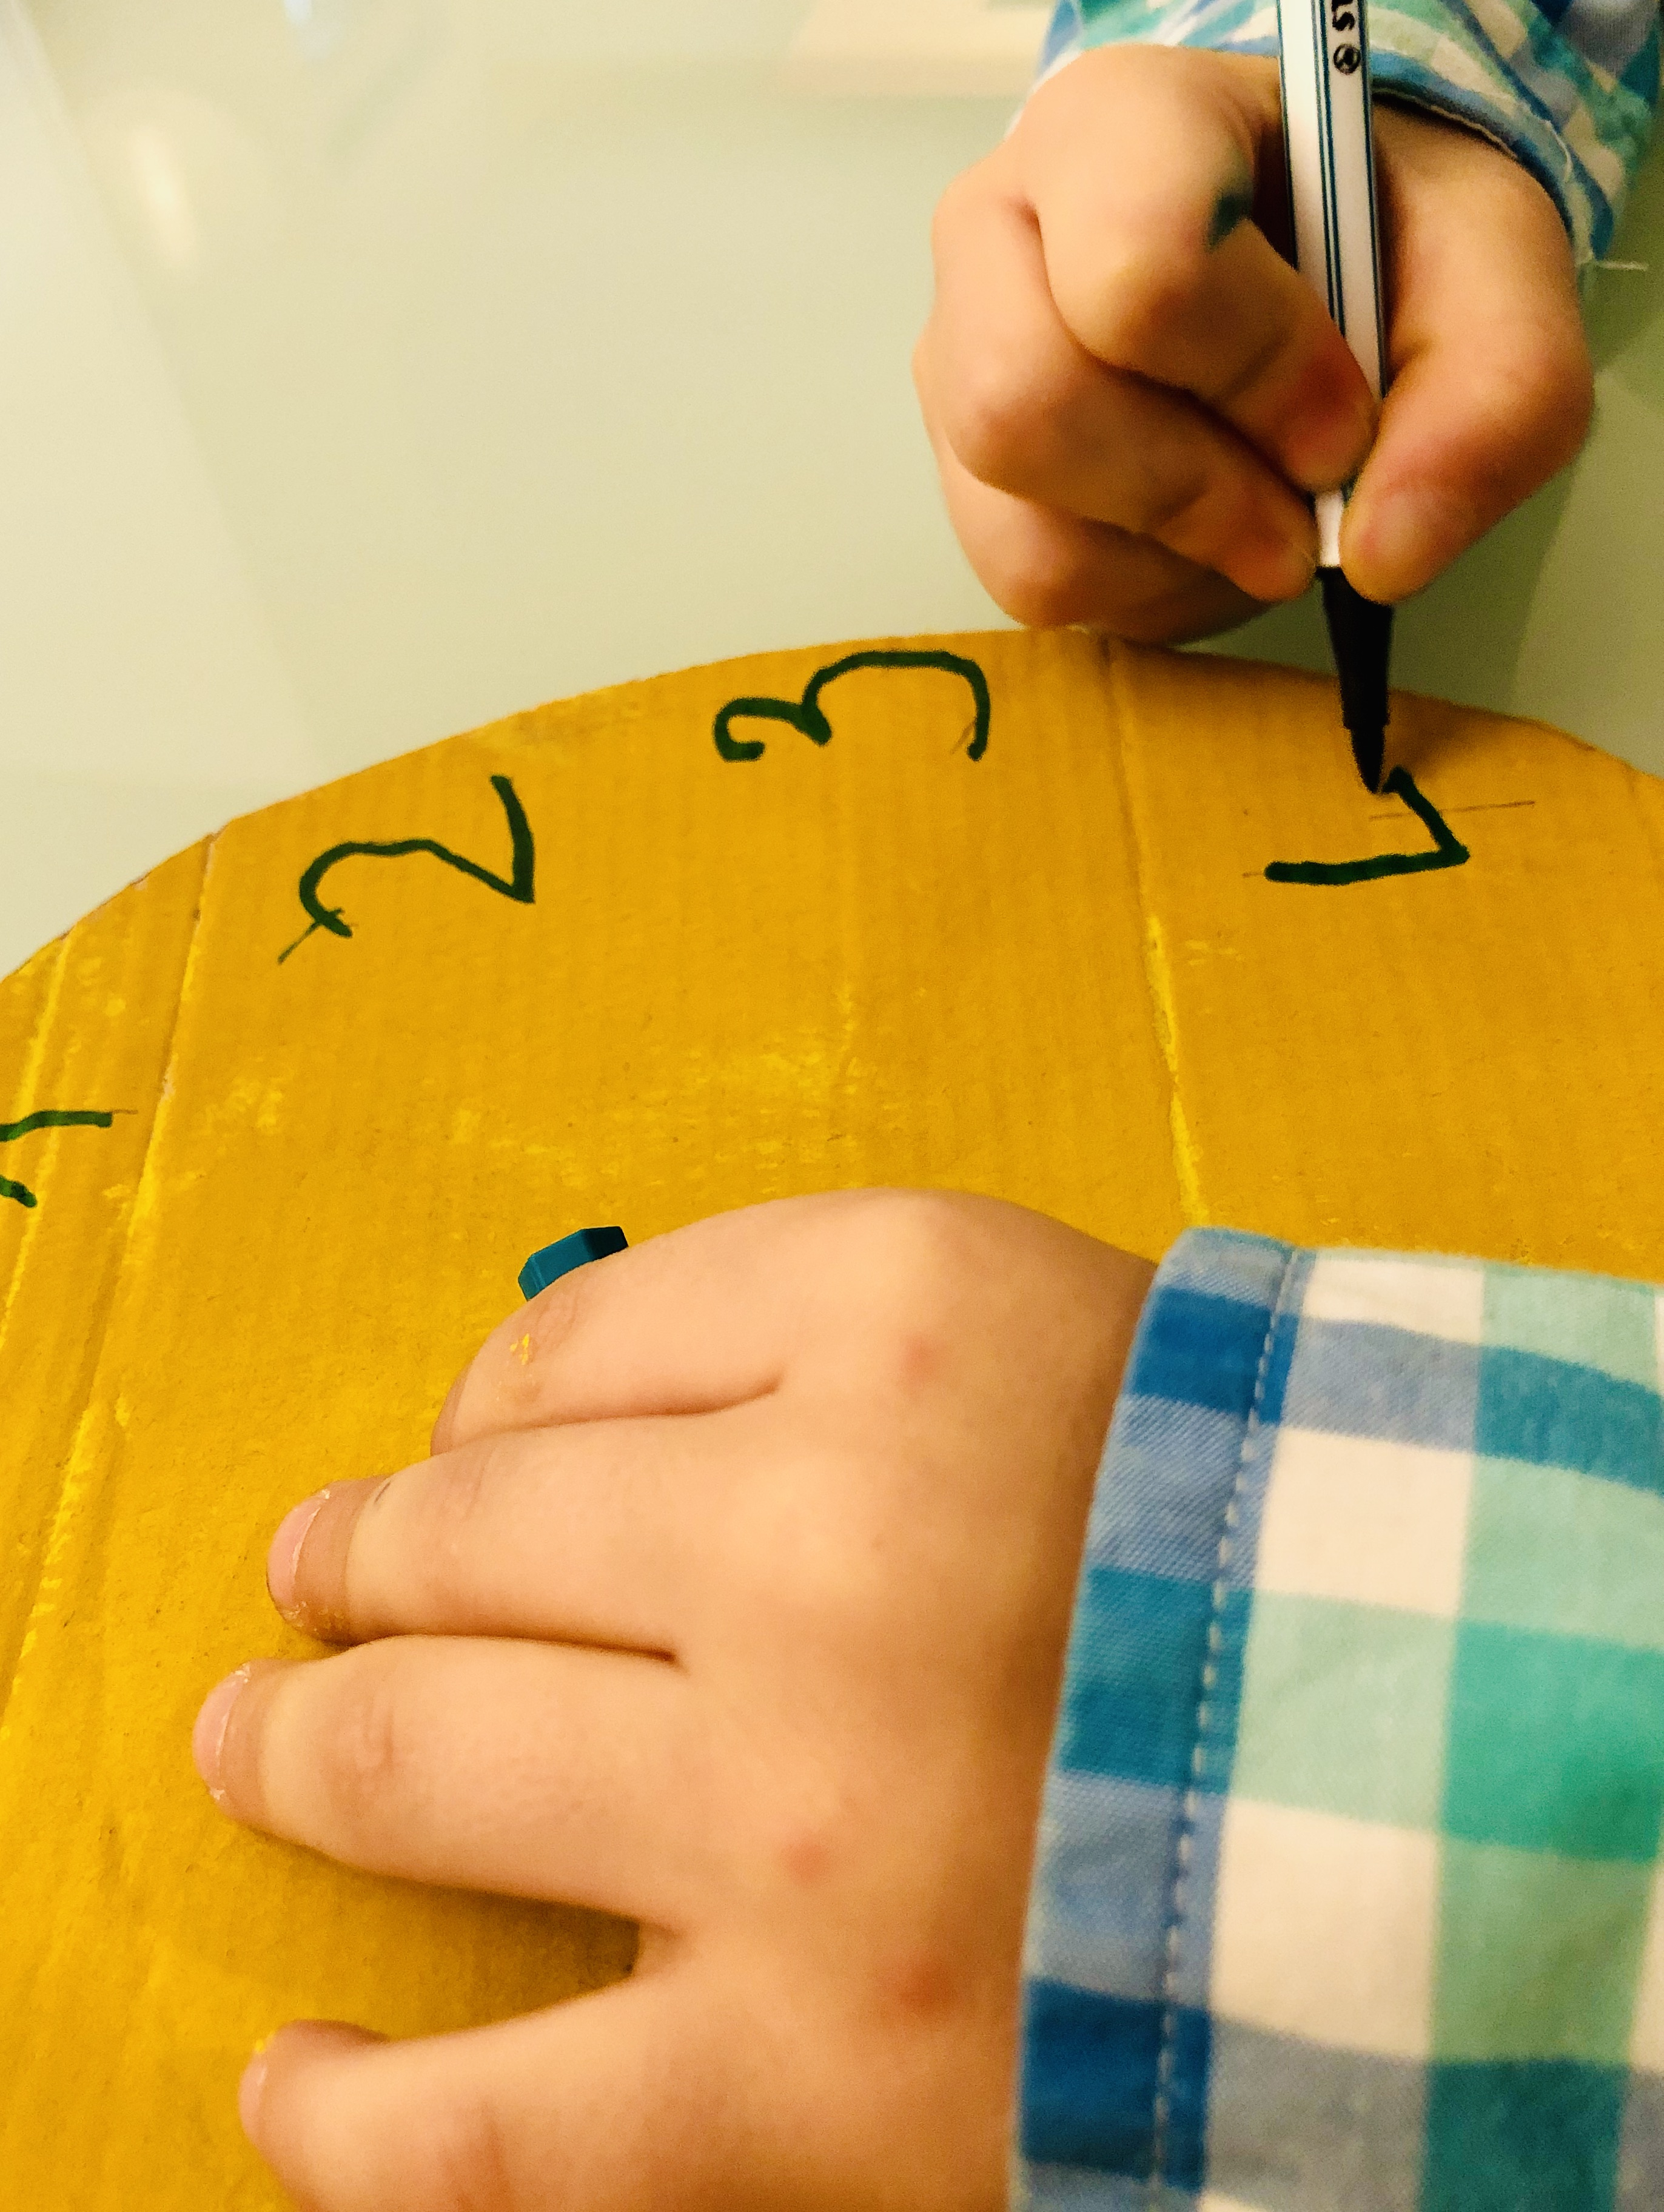 kid writing numbers on a clock